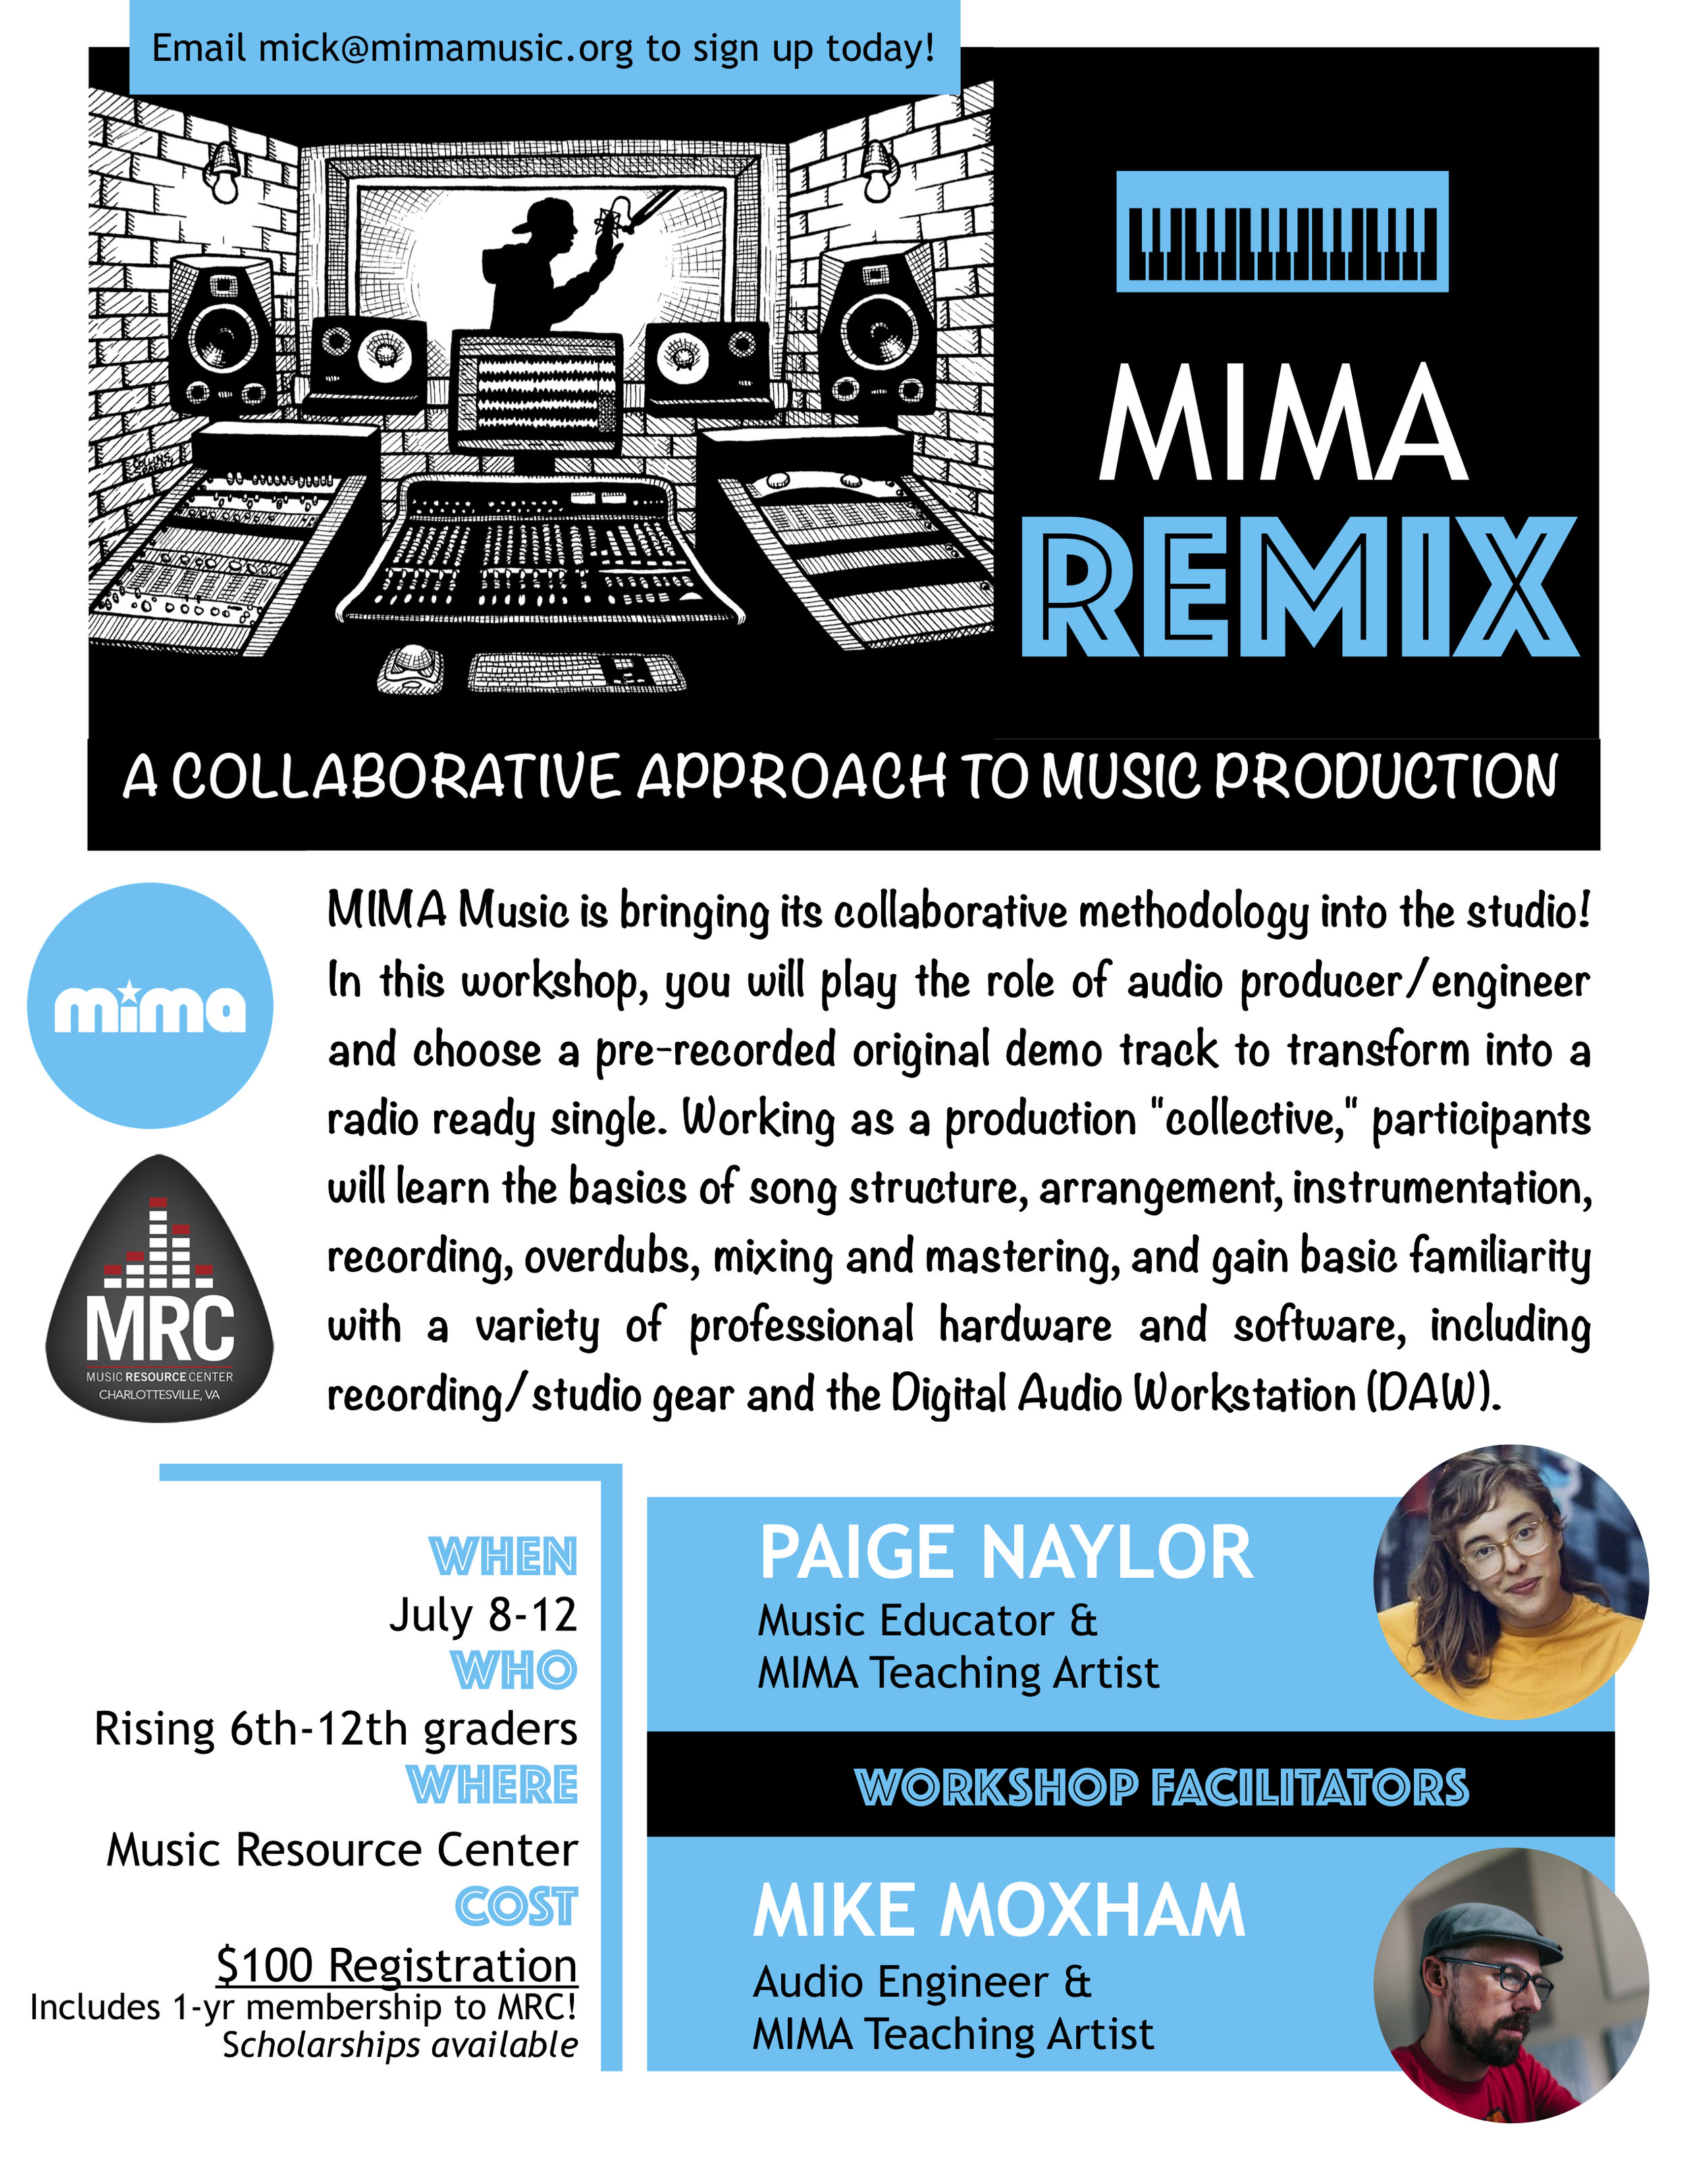 """MIMA REMIX"" SUMMER CAMP - @MUSIC RESOURCE CENTERJULY 8-12, M-F, 10am - 12:30pm$100 Registration includes 1-yr membership to MRC! Scholarships available!"